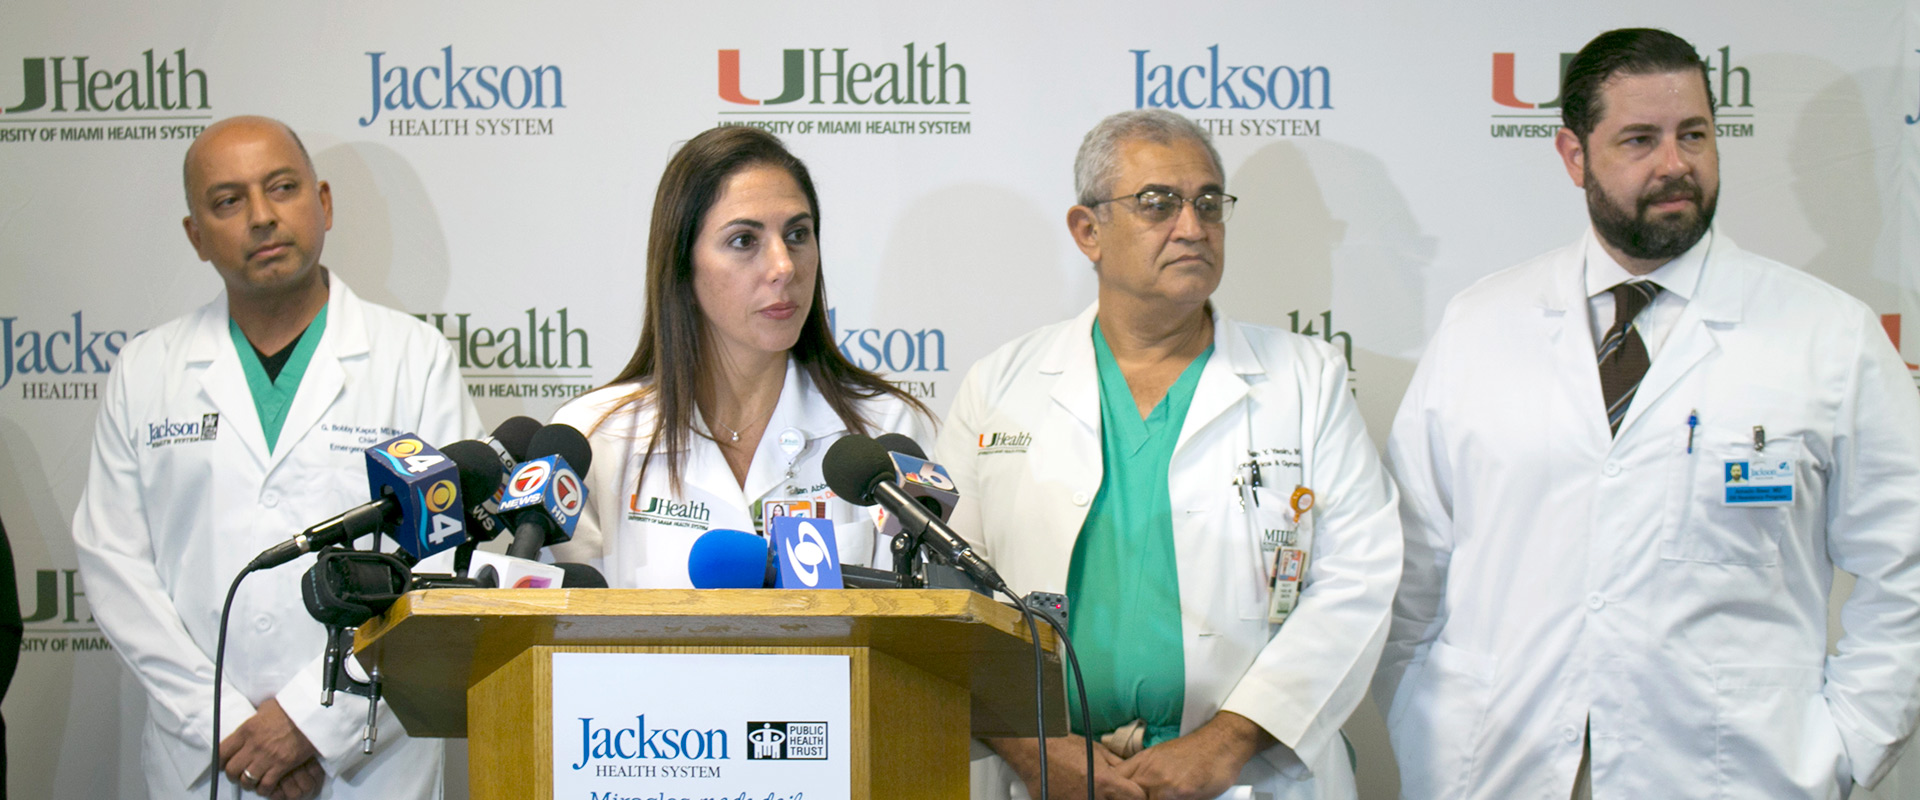 Zika State of Emergency Press Conference 2015